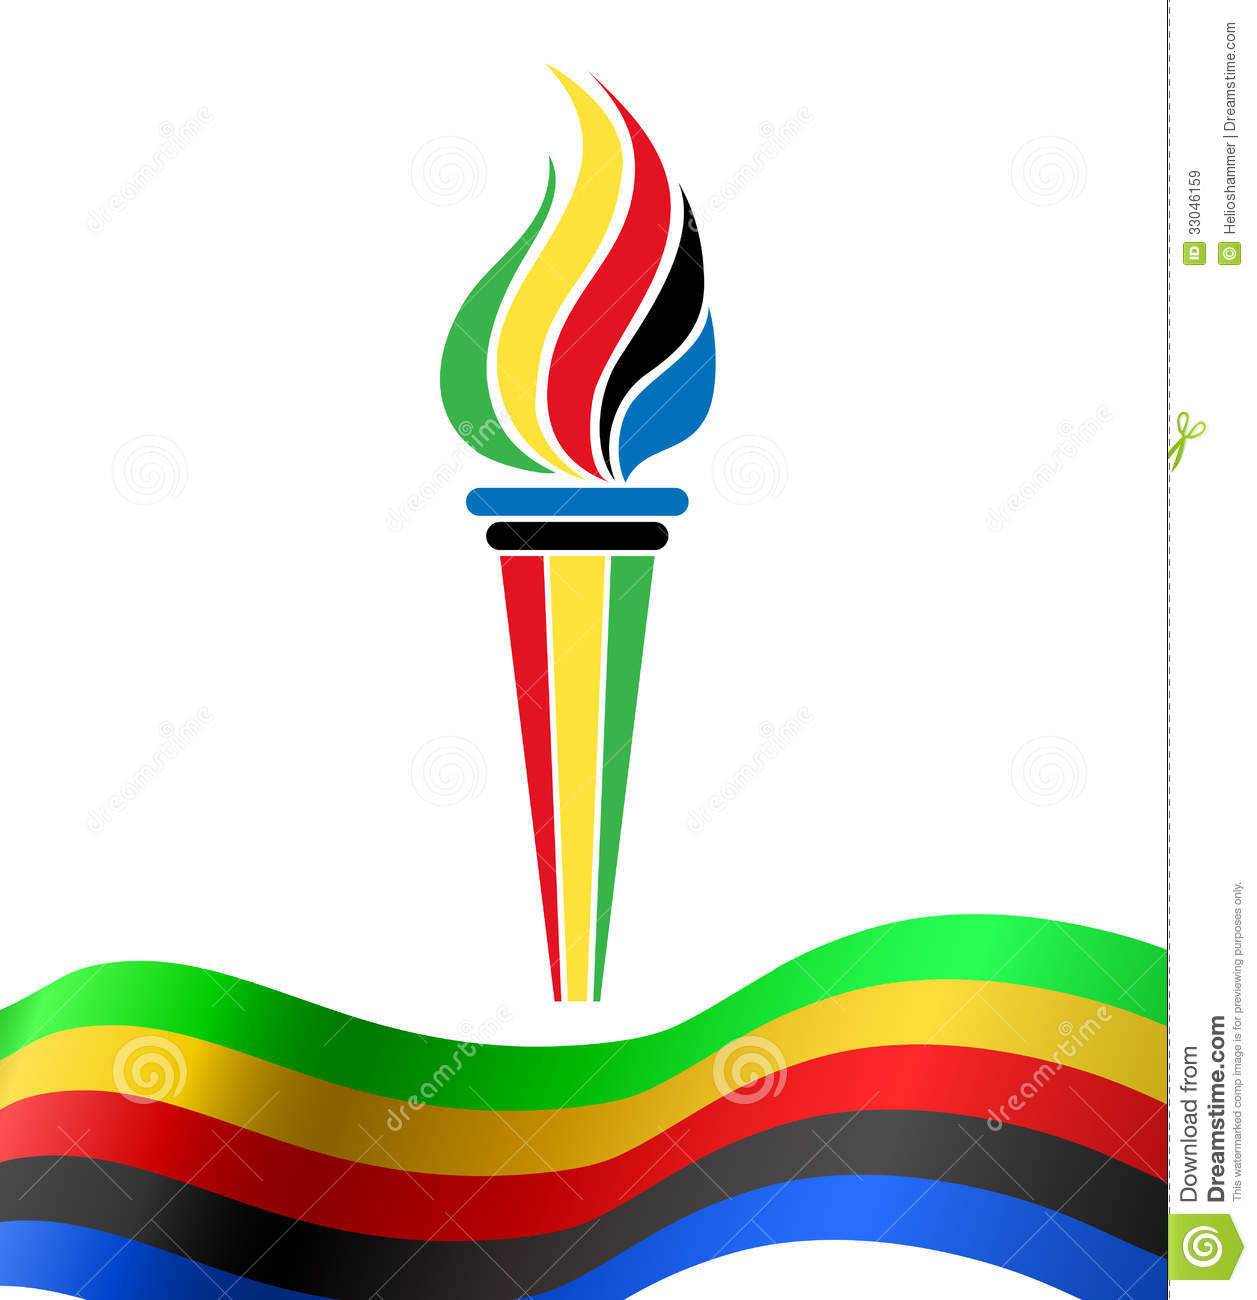 Olympische Ringe Hd Png